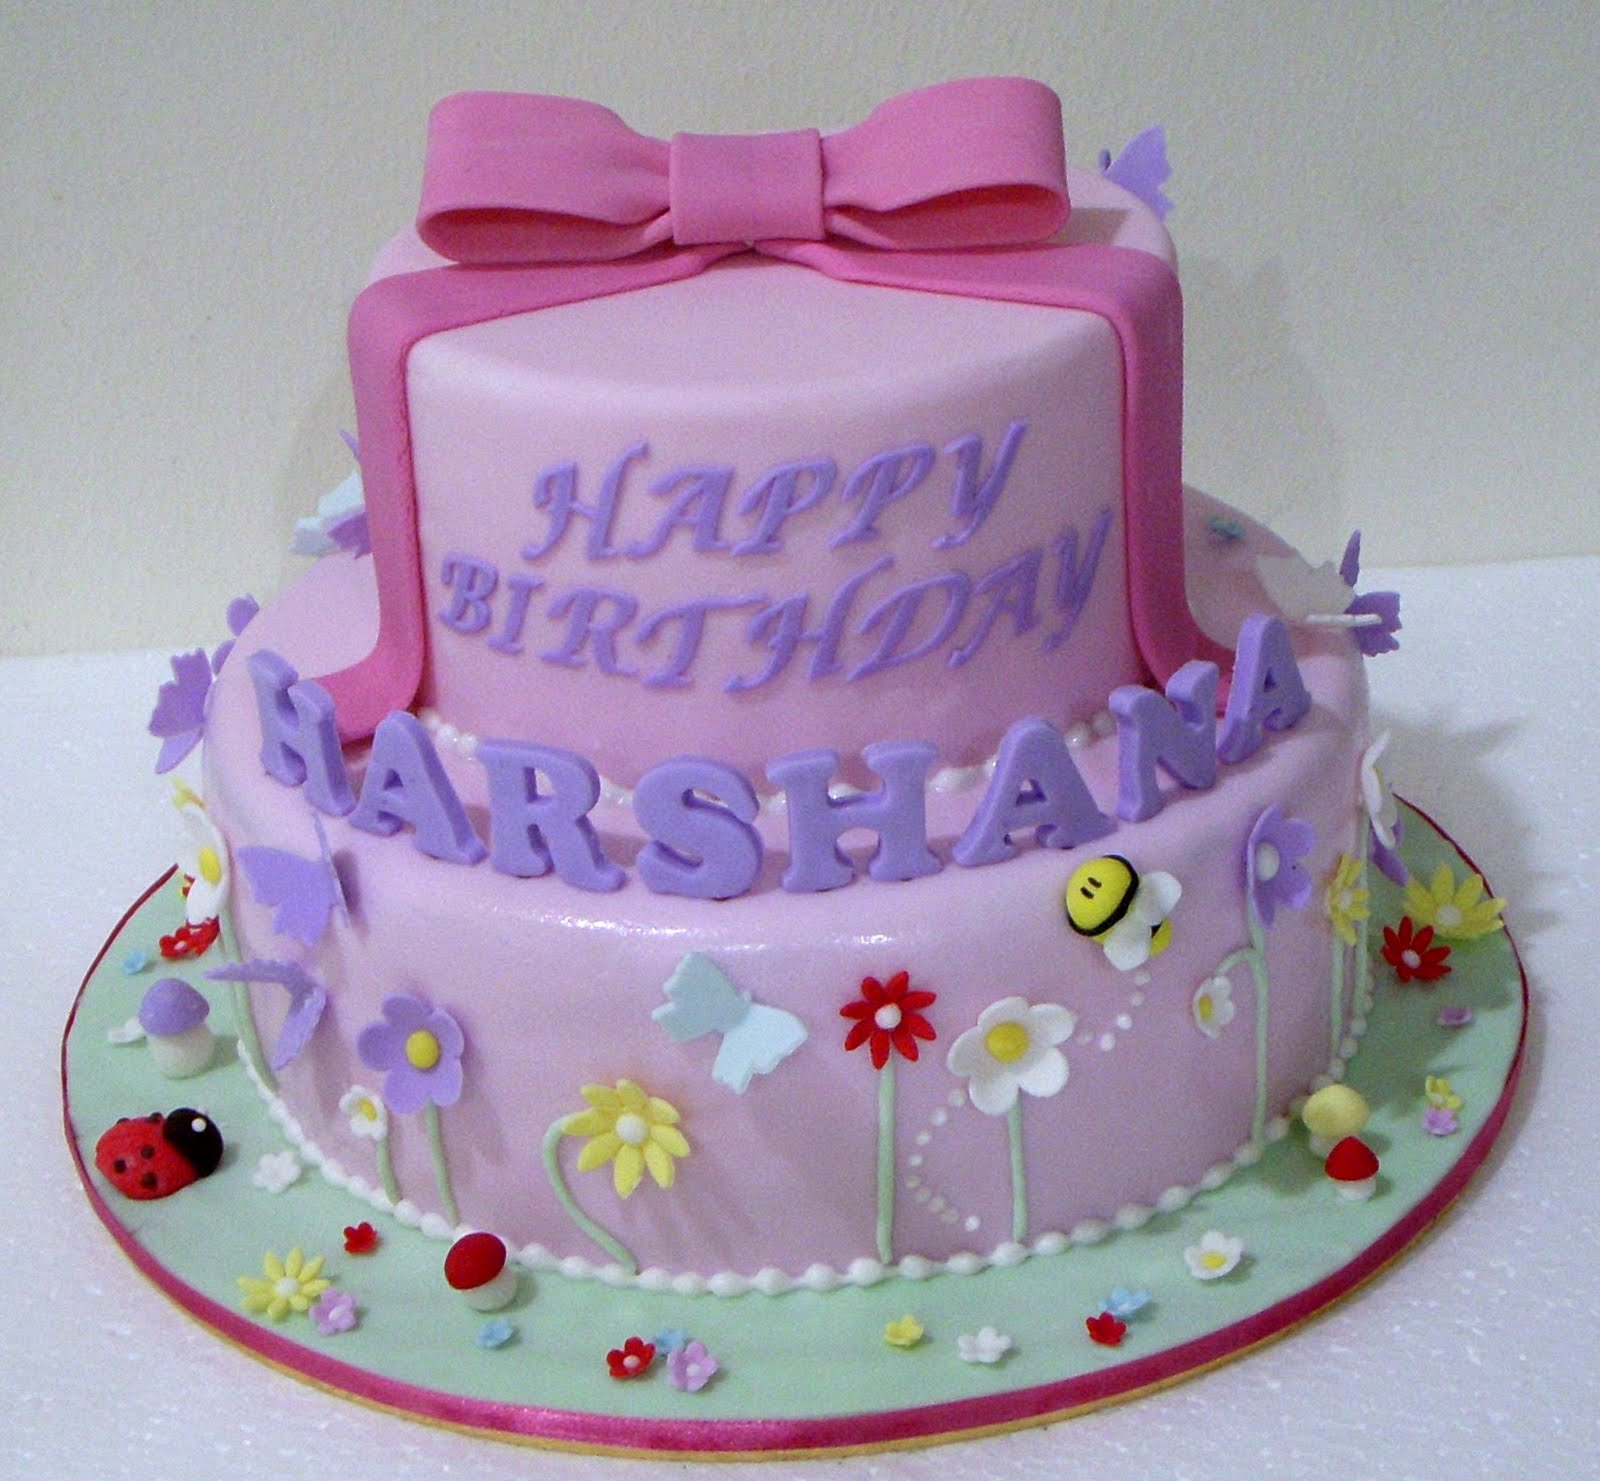 Bearylicious Cakes Floral And Pink Bow Garden Birthday Cake